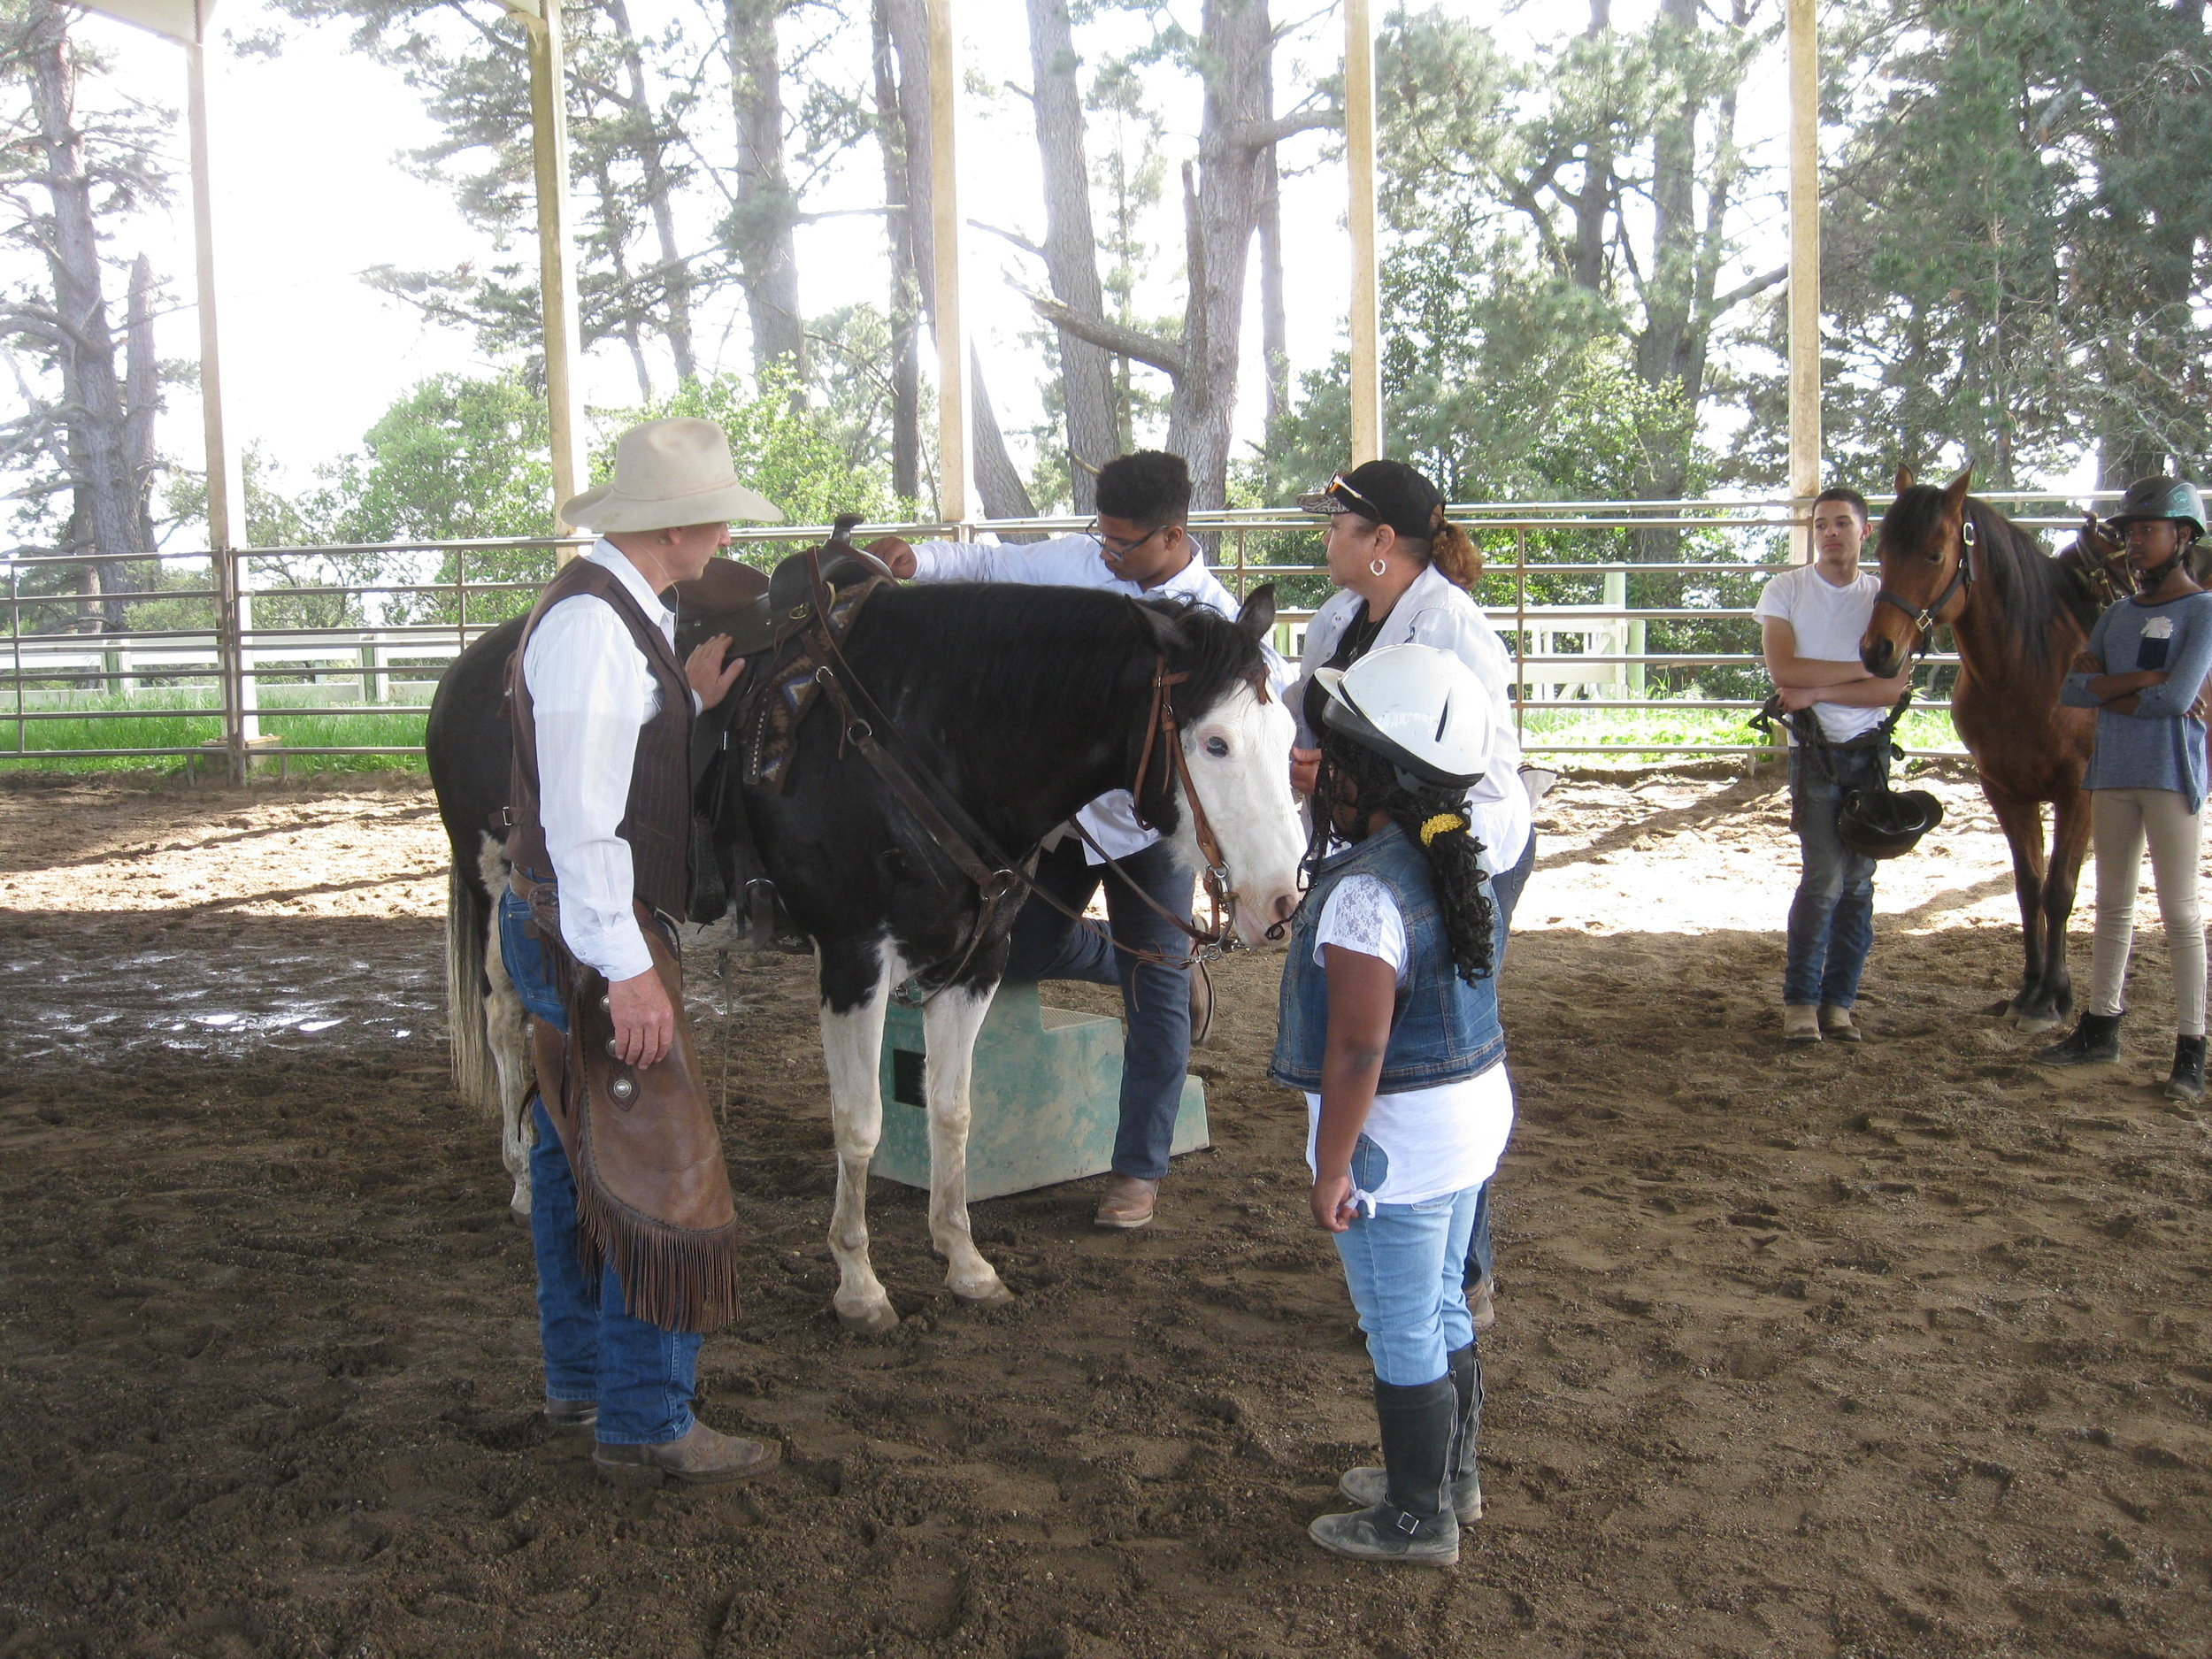 Chris talks about building a relationship with your horse.